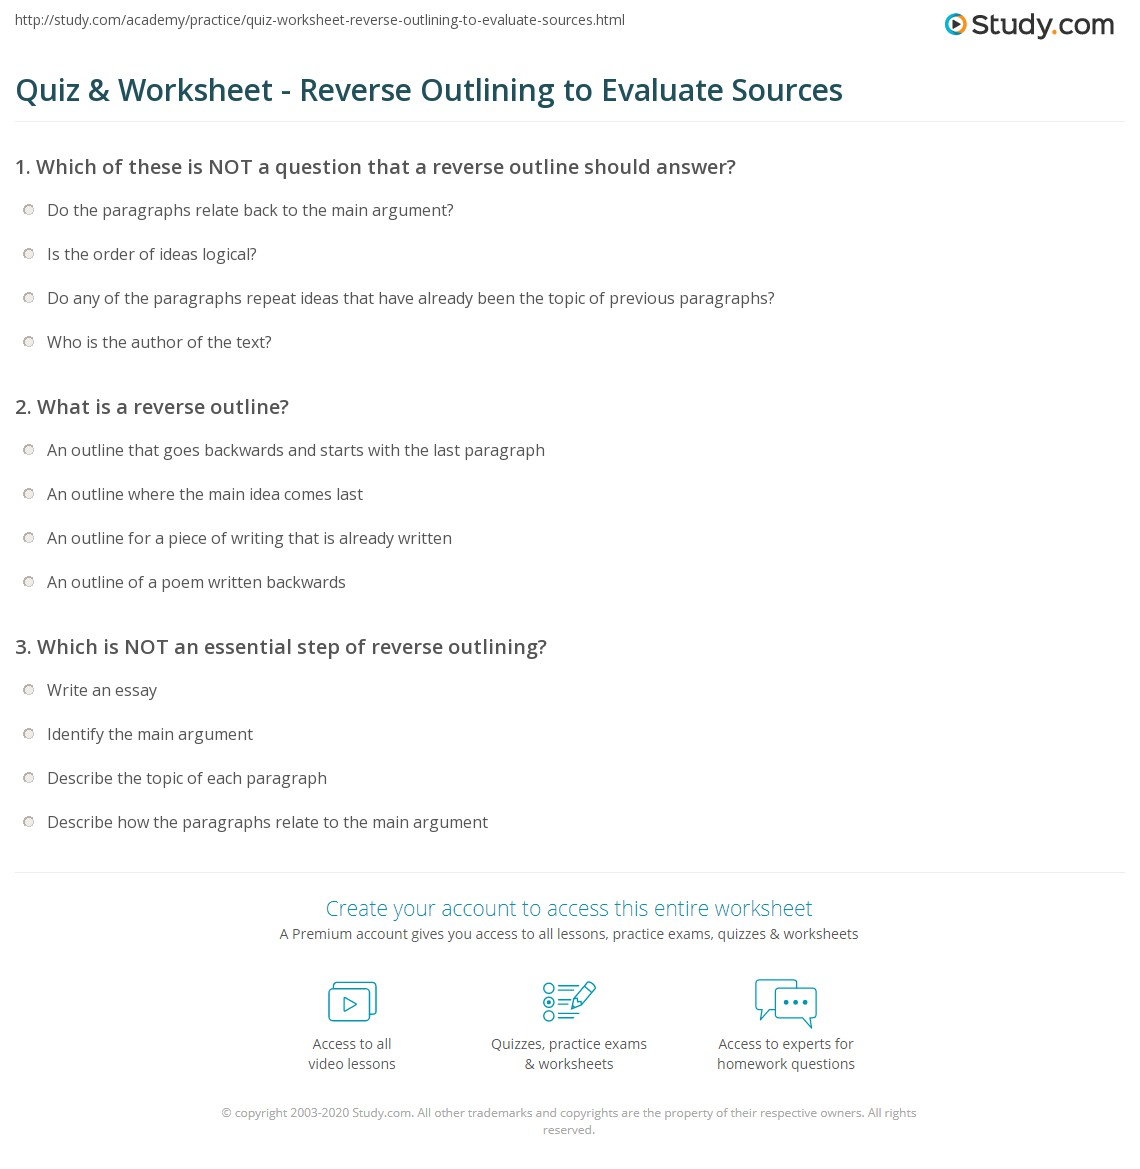 Quiz Worksheet Reverse Outlining To Evaluate Sources